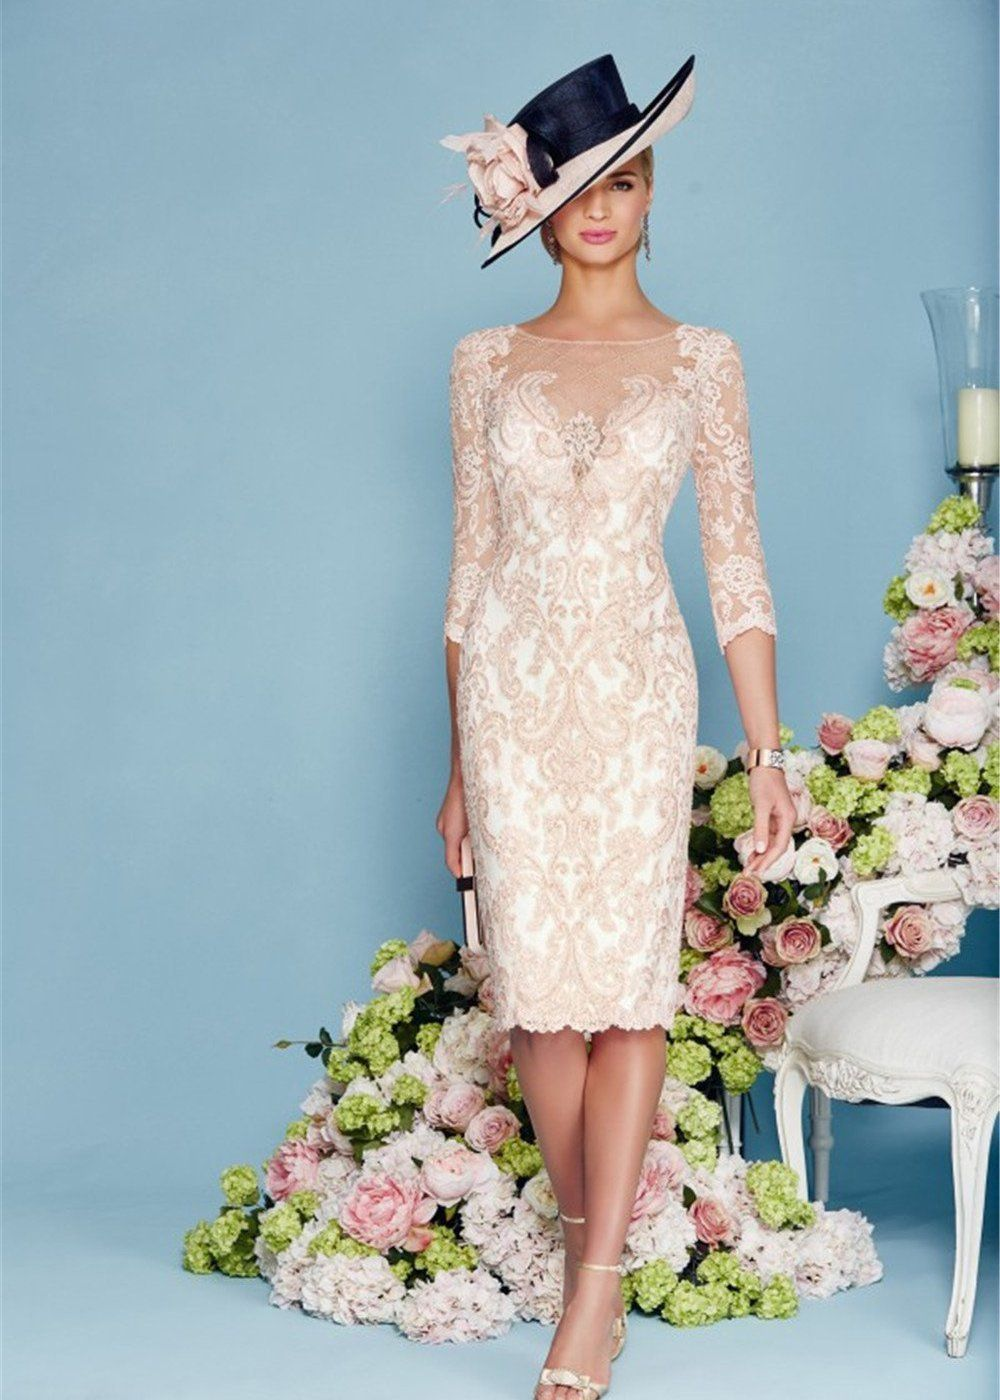 Wonderful Light Pink Lace Cocktail Dress Gallery - Wedding Ideas ...